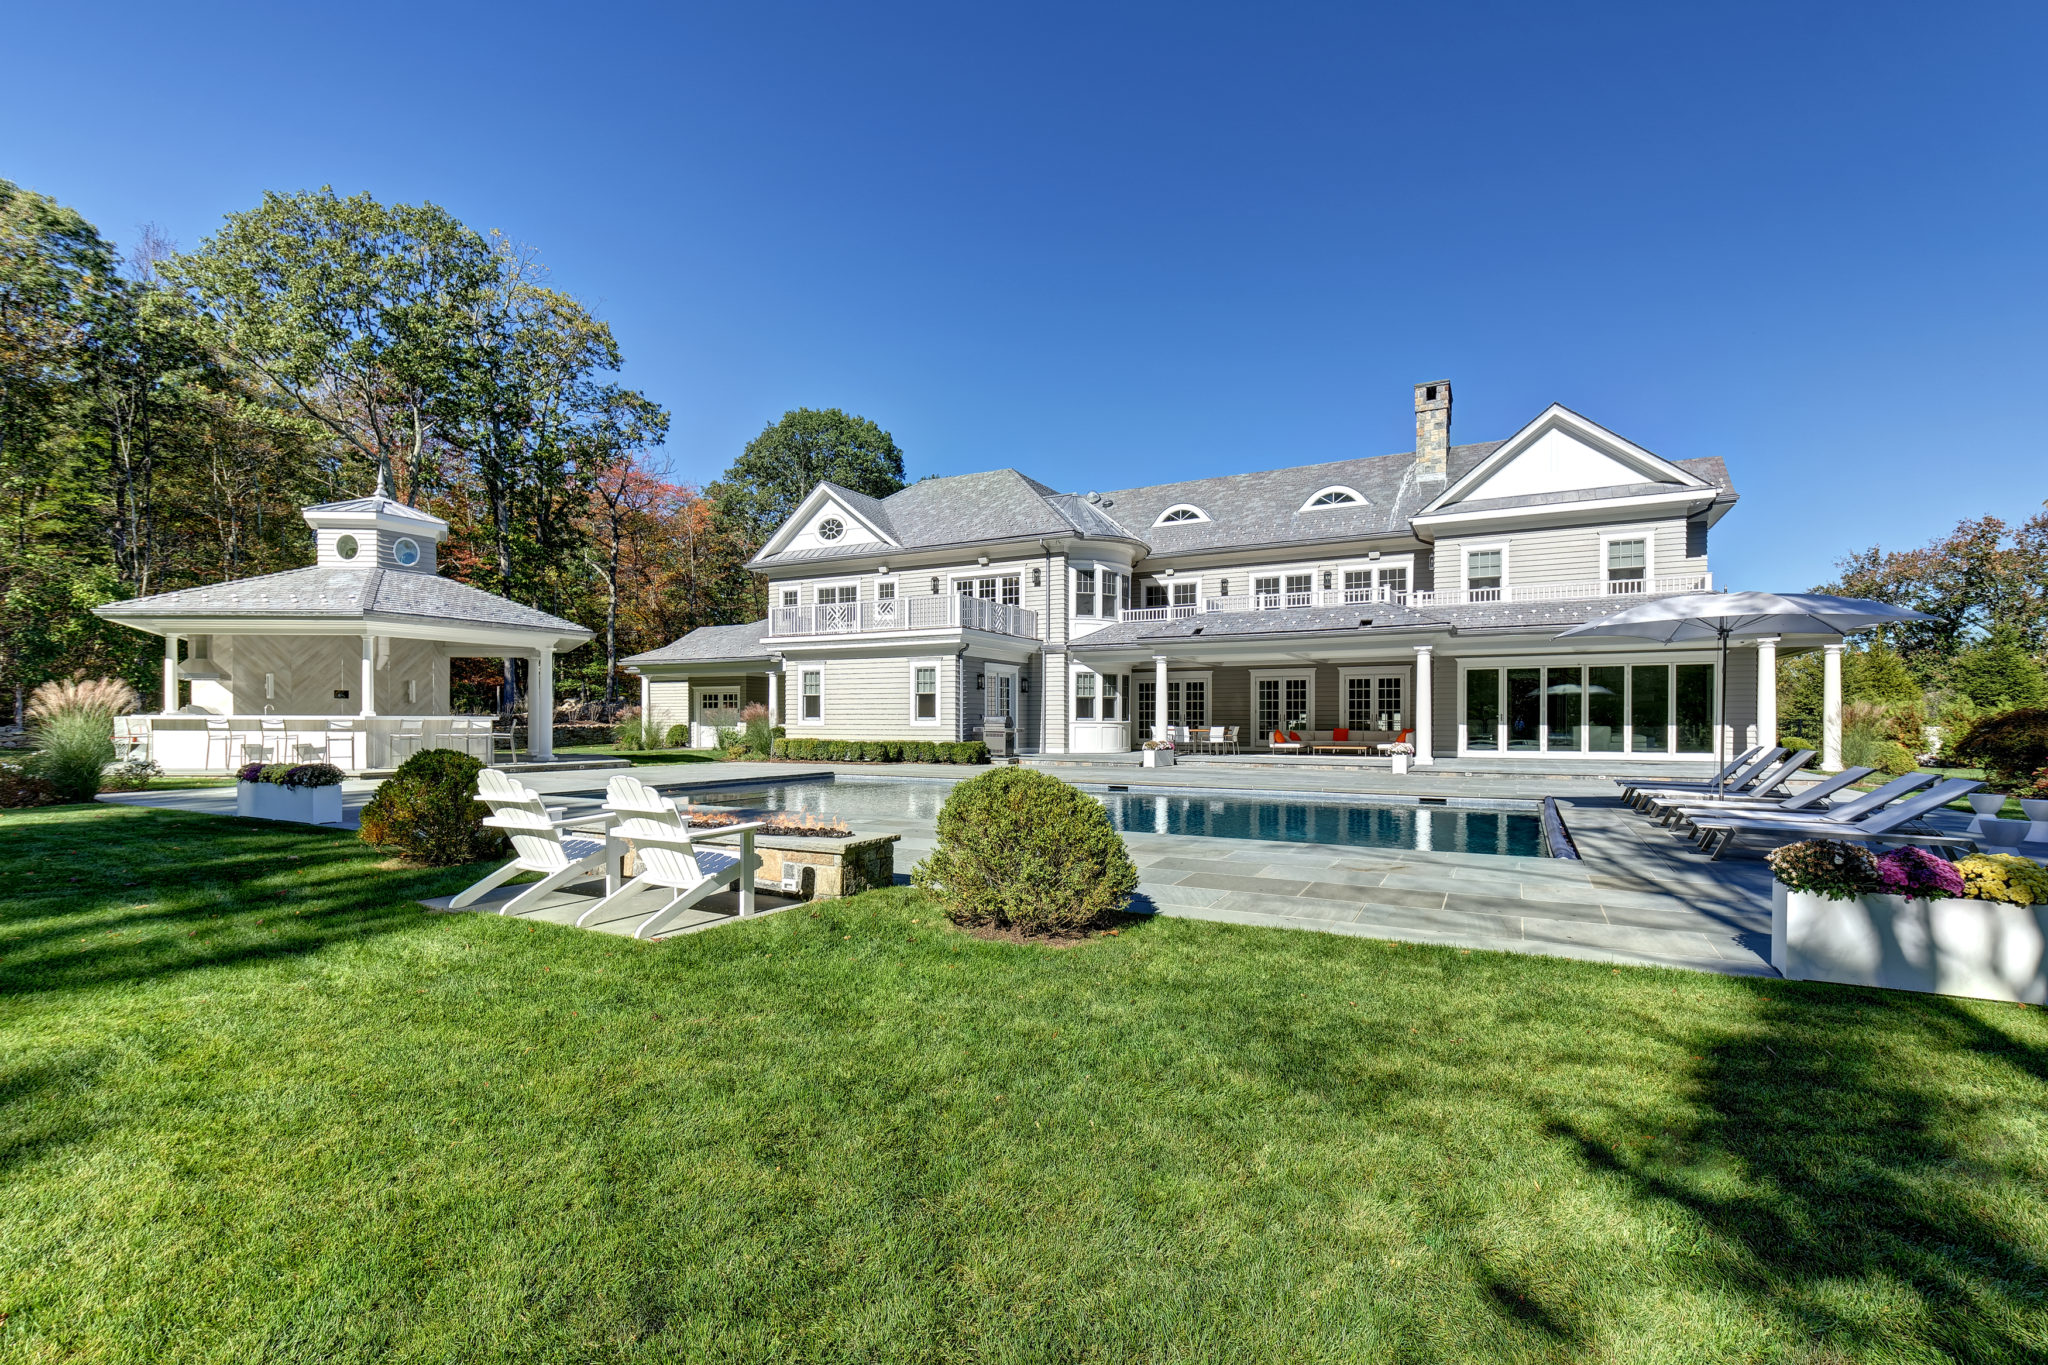 Real Estate Photo Shoot in Greenwich, CT